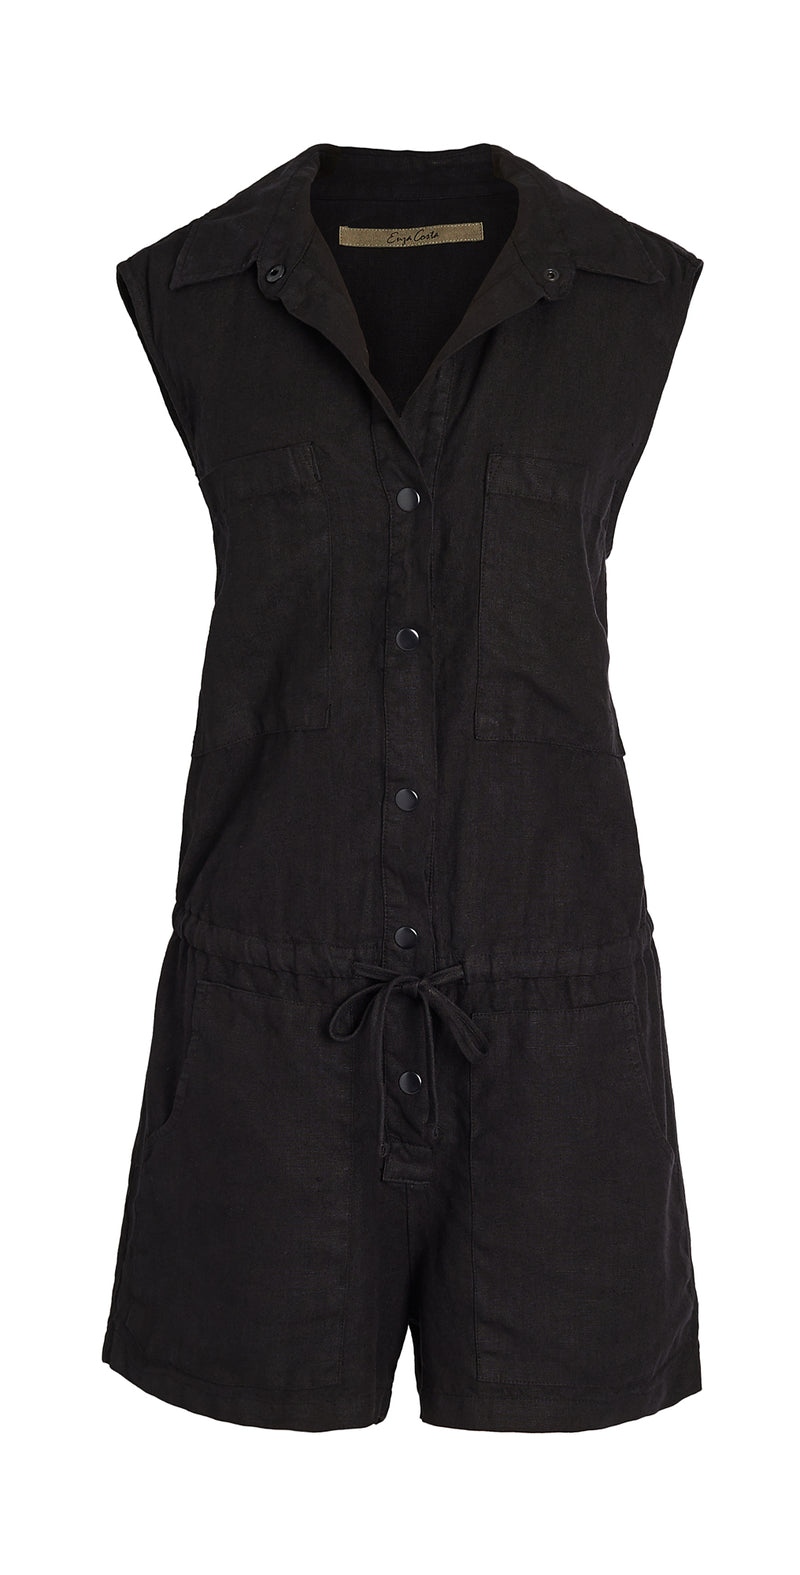 Hemp Sleeveless Romper - Black - house of lolo